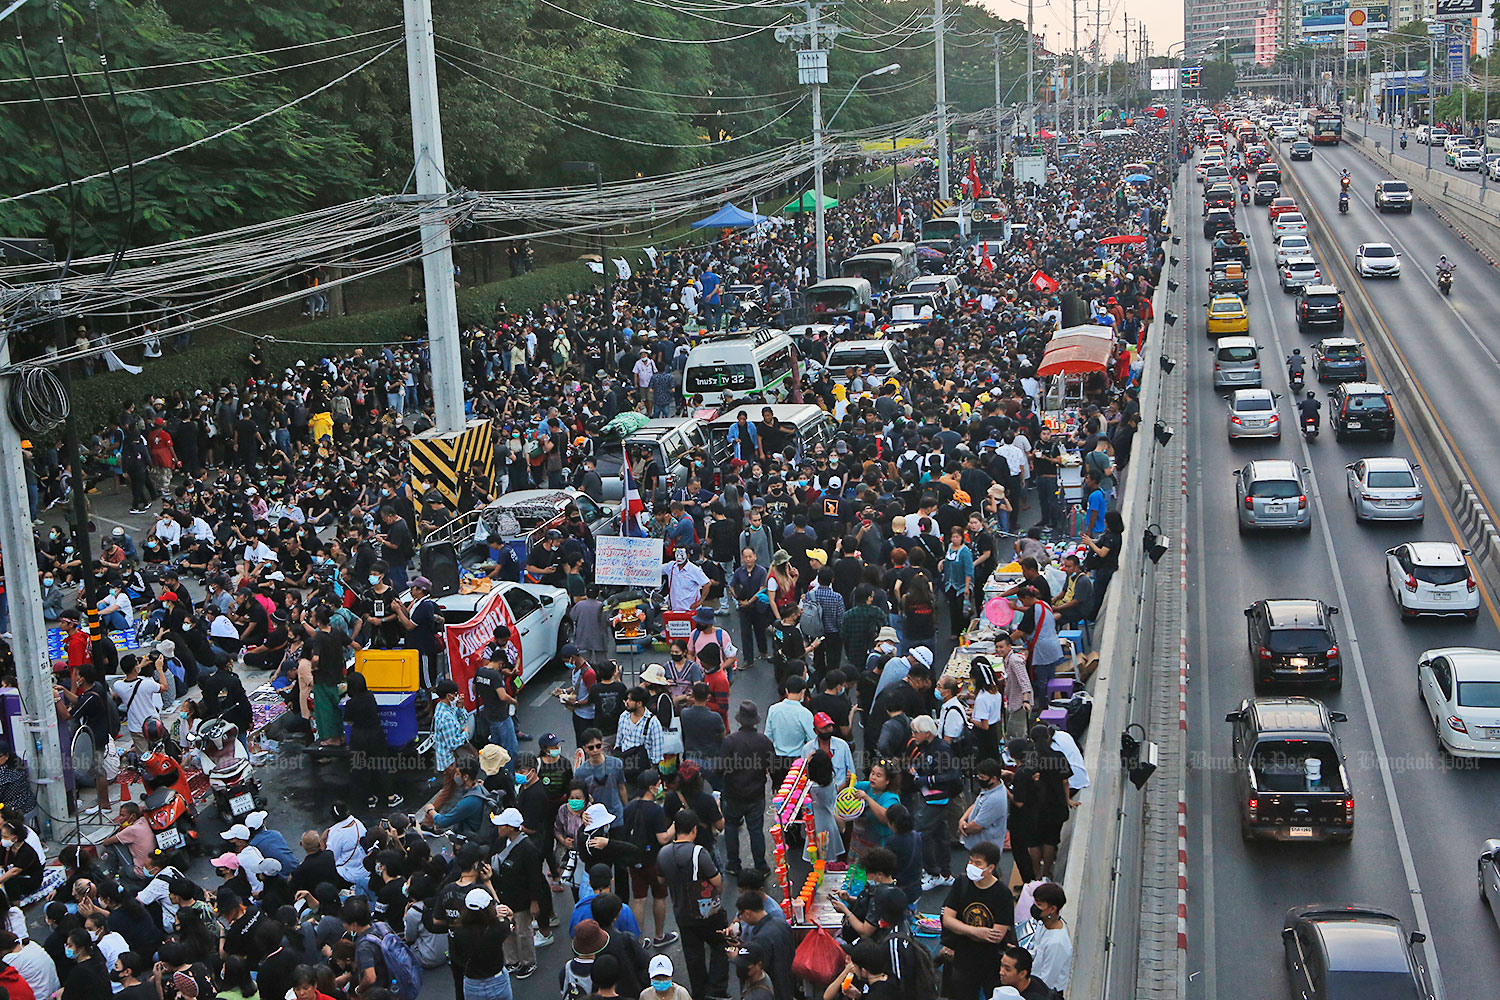 Anti-government protesters occupy the road outside the head office of Siam Commercial Bank near Ratchayothin intersection.(Photo by Arnun Chonmahatrakool)